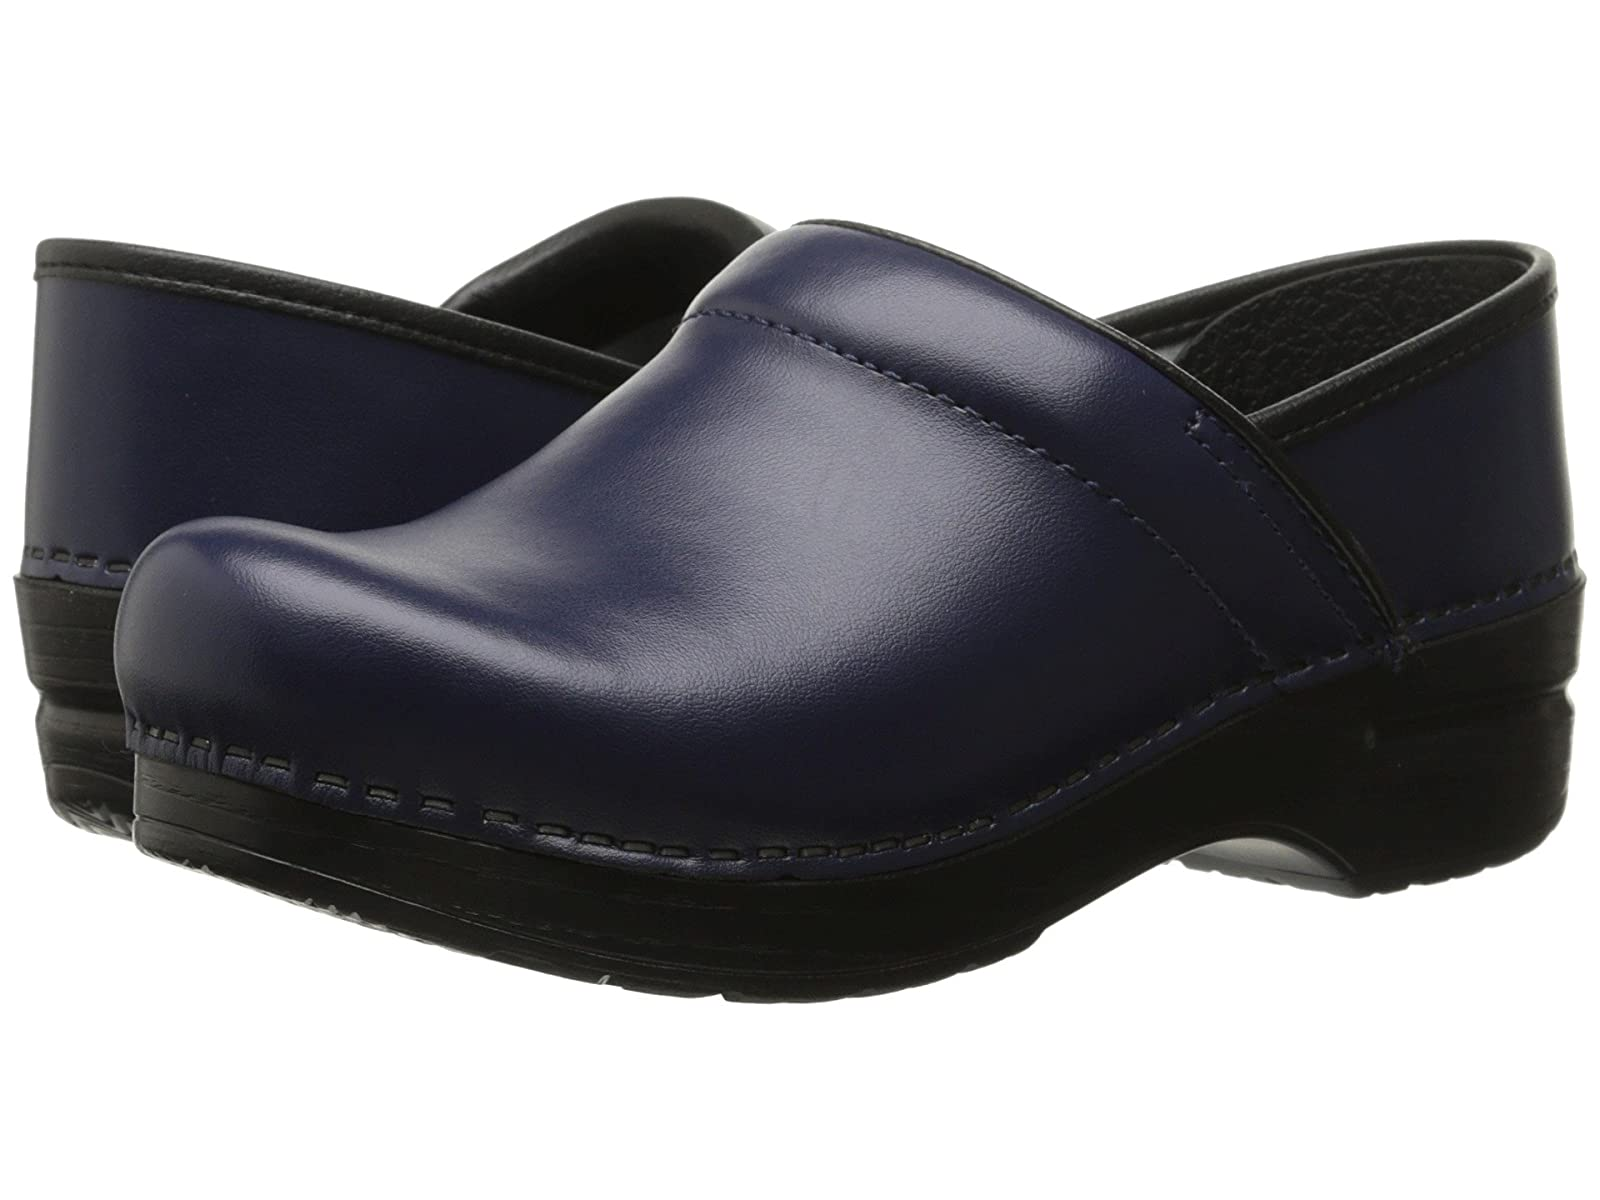 Dansko ProfessionalEconomical and quality shoes